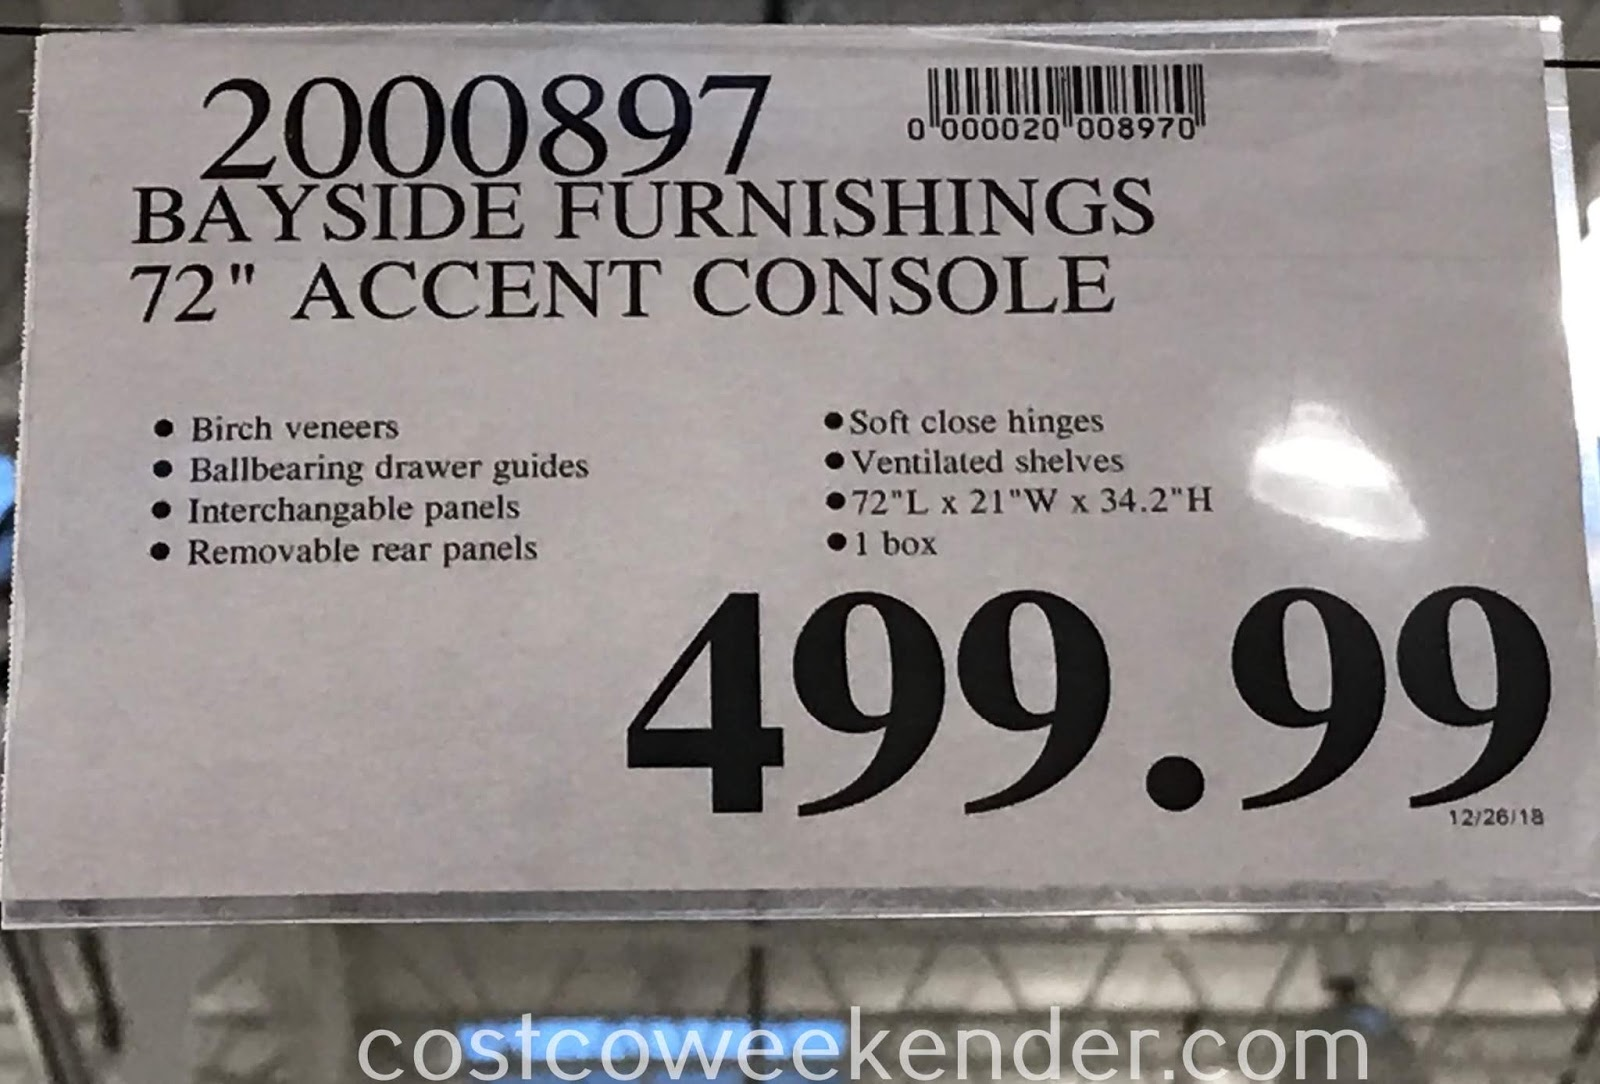 Deal for the Bayside Furnishings Accent Console at Costco